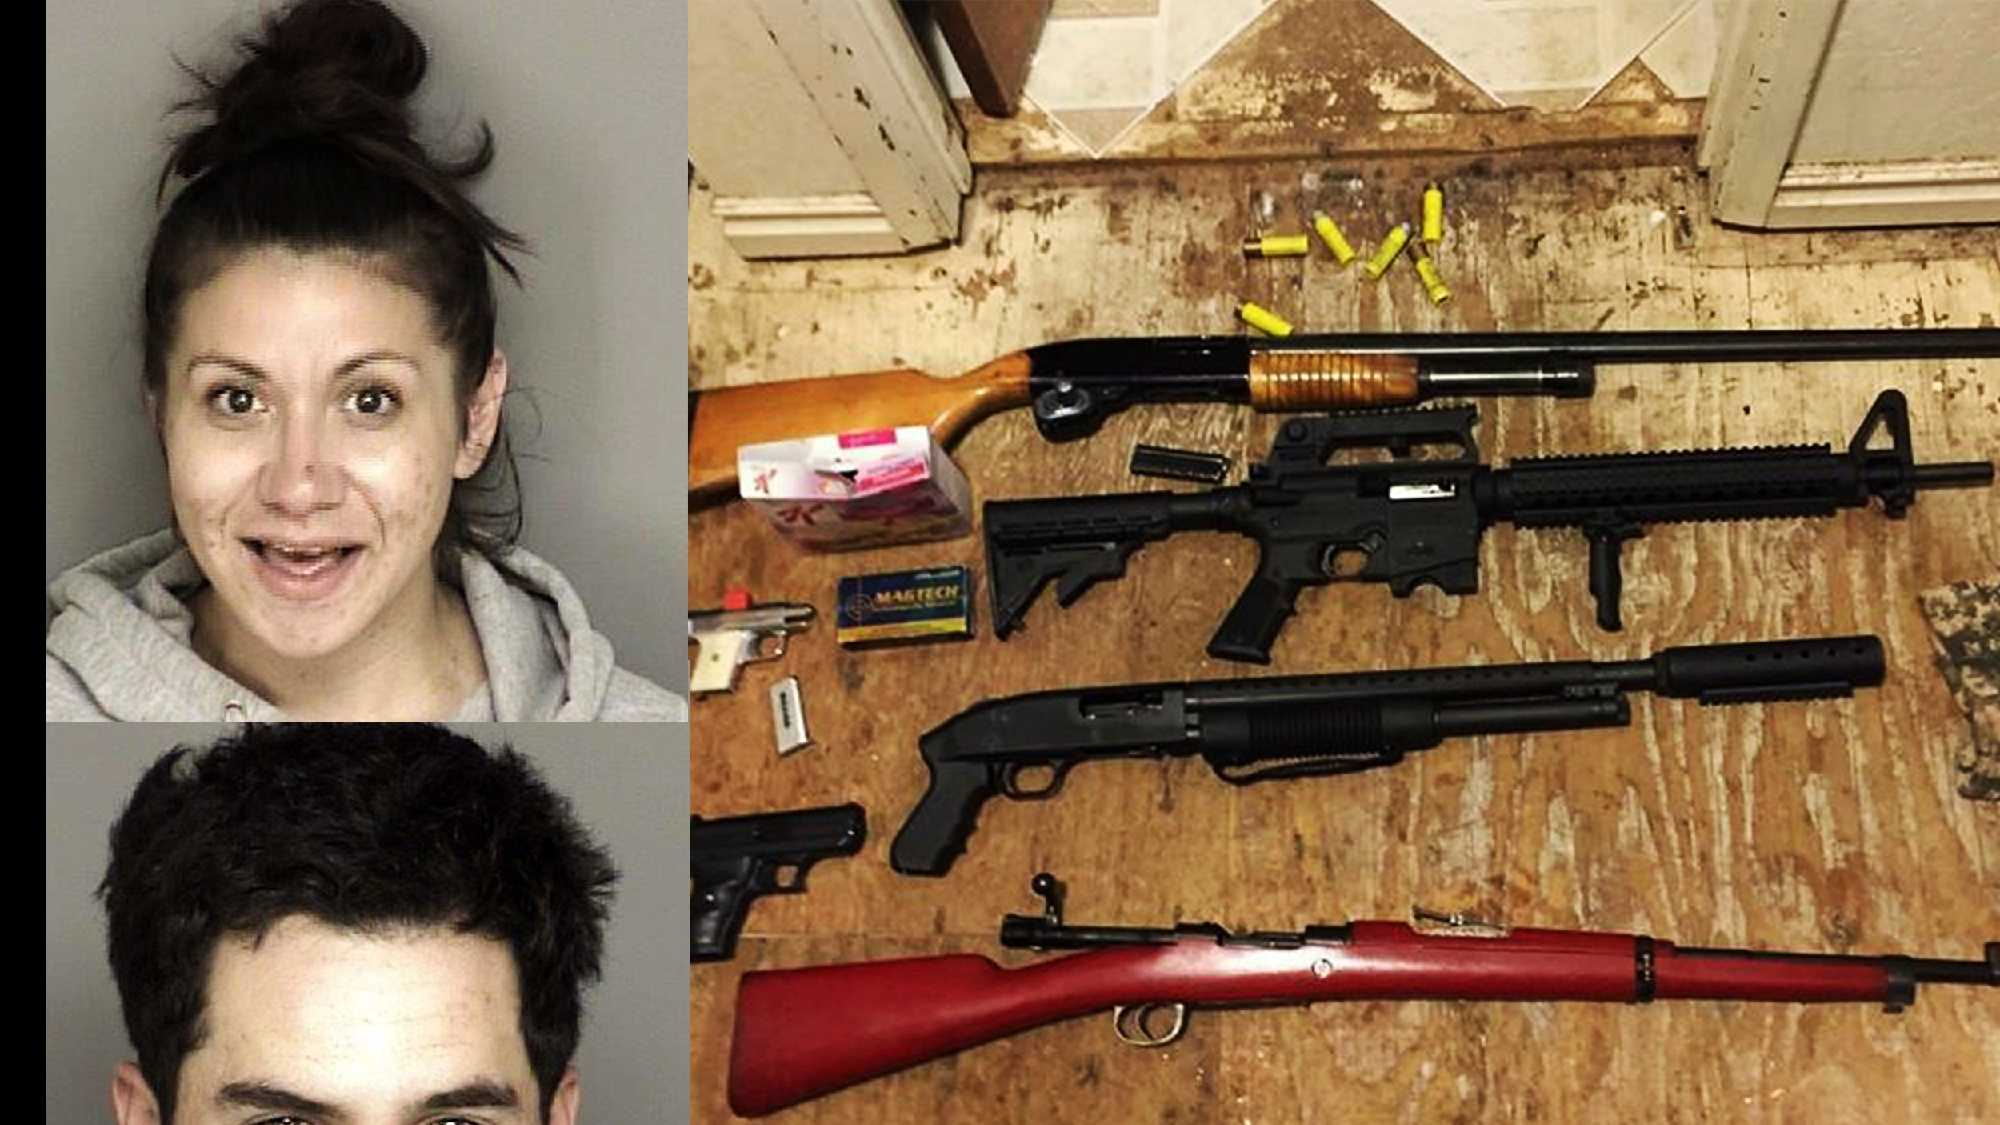 Amanda Mairose, Eduardo Barajas, and seized guns